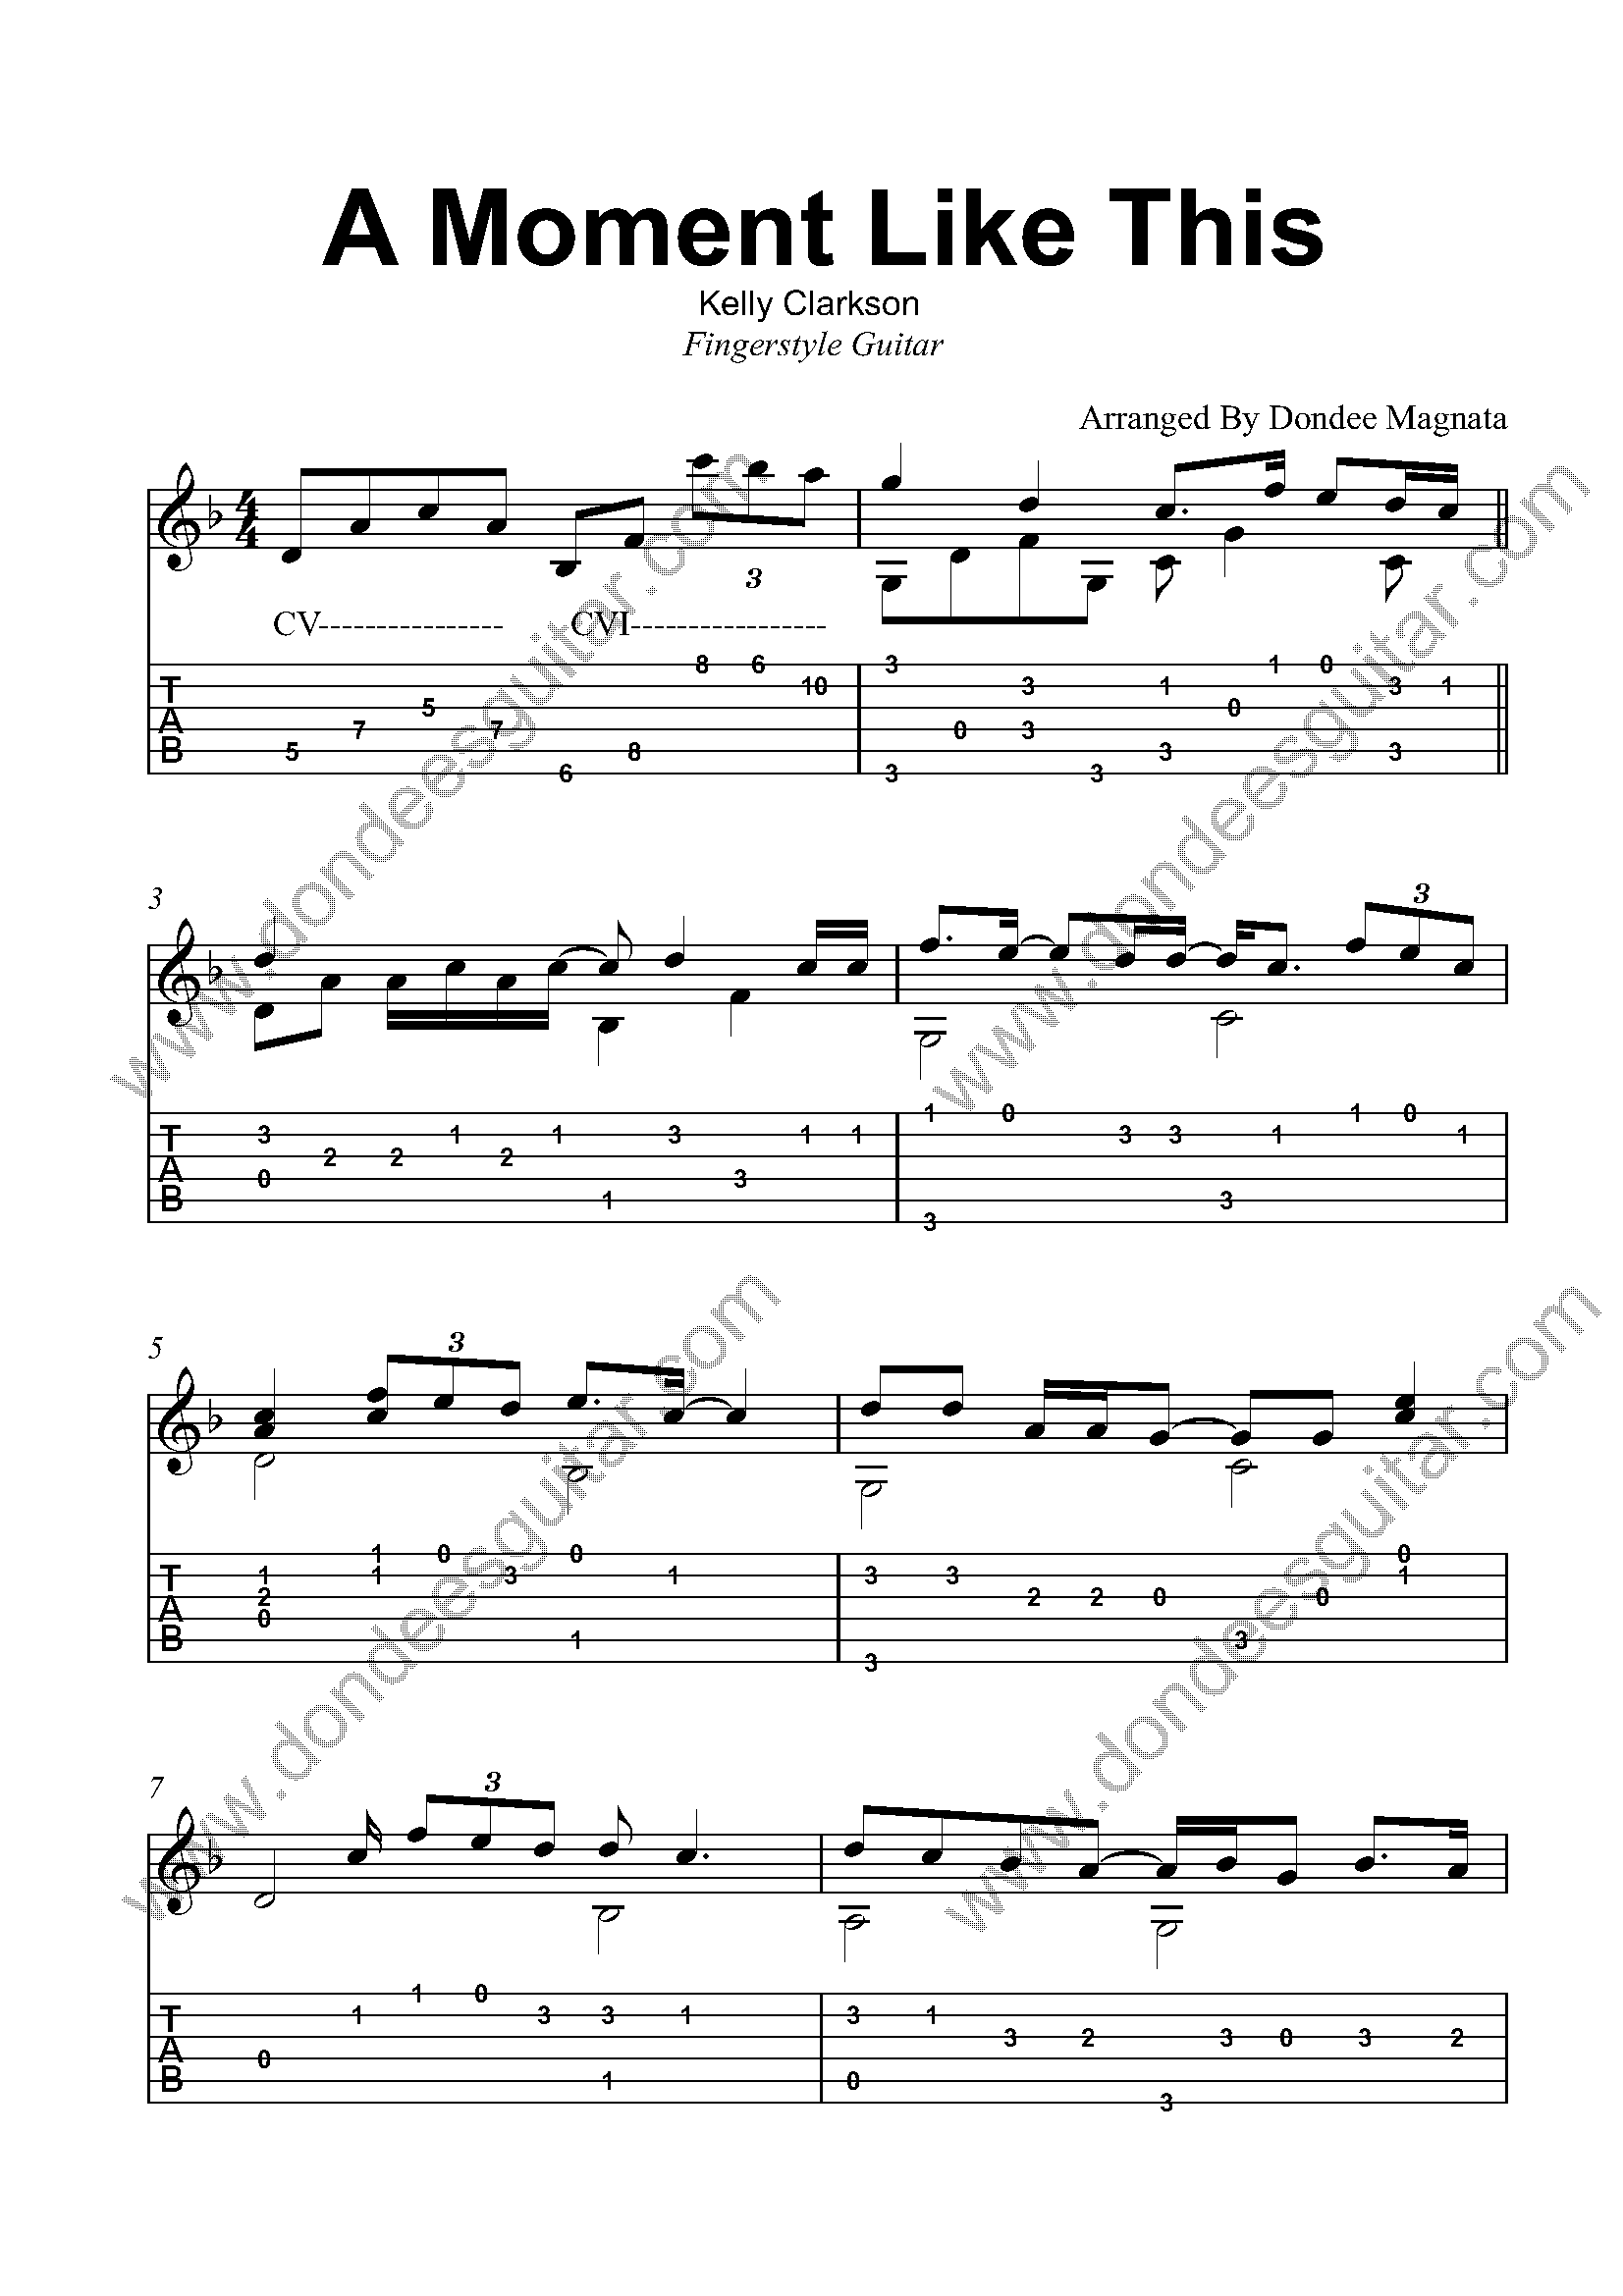 A Moment Like This Fingerstyle Tabs